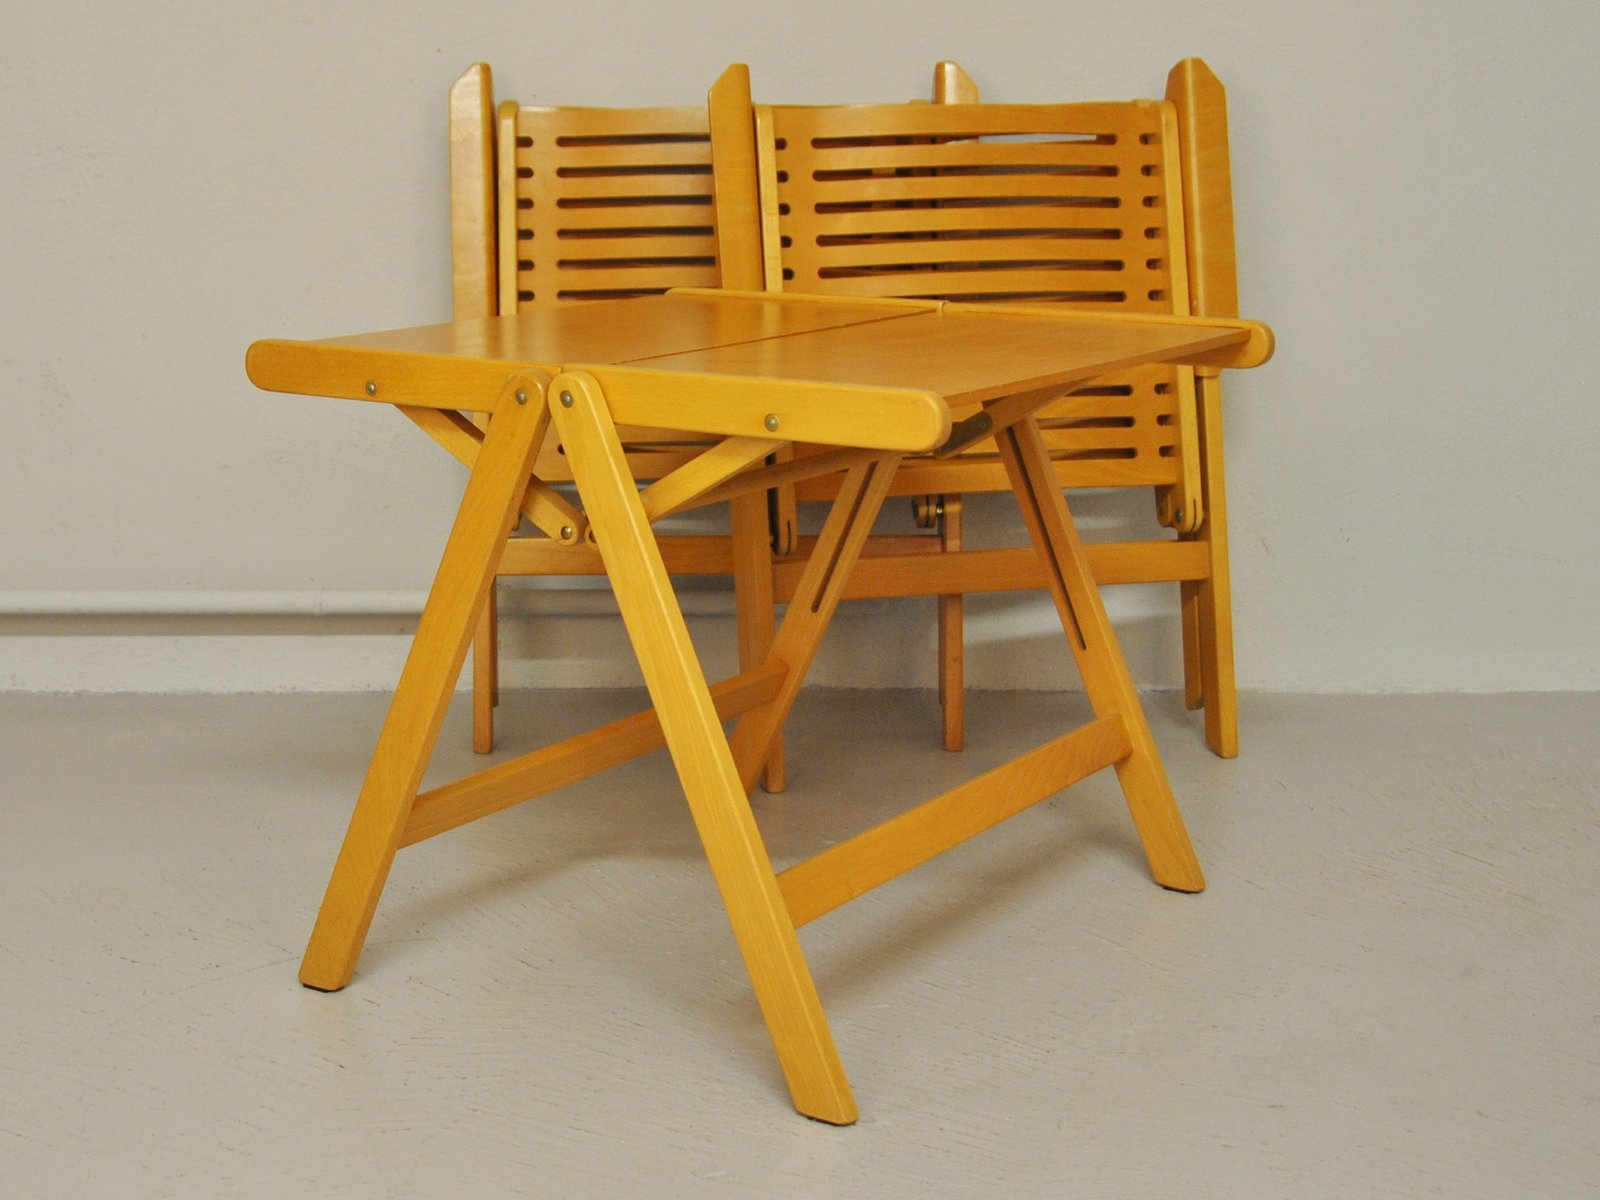 Rex Folding Chairs & Table by Niko Kralj 1952 Set of 3 for sale